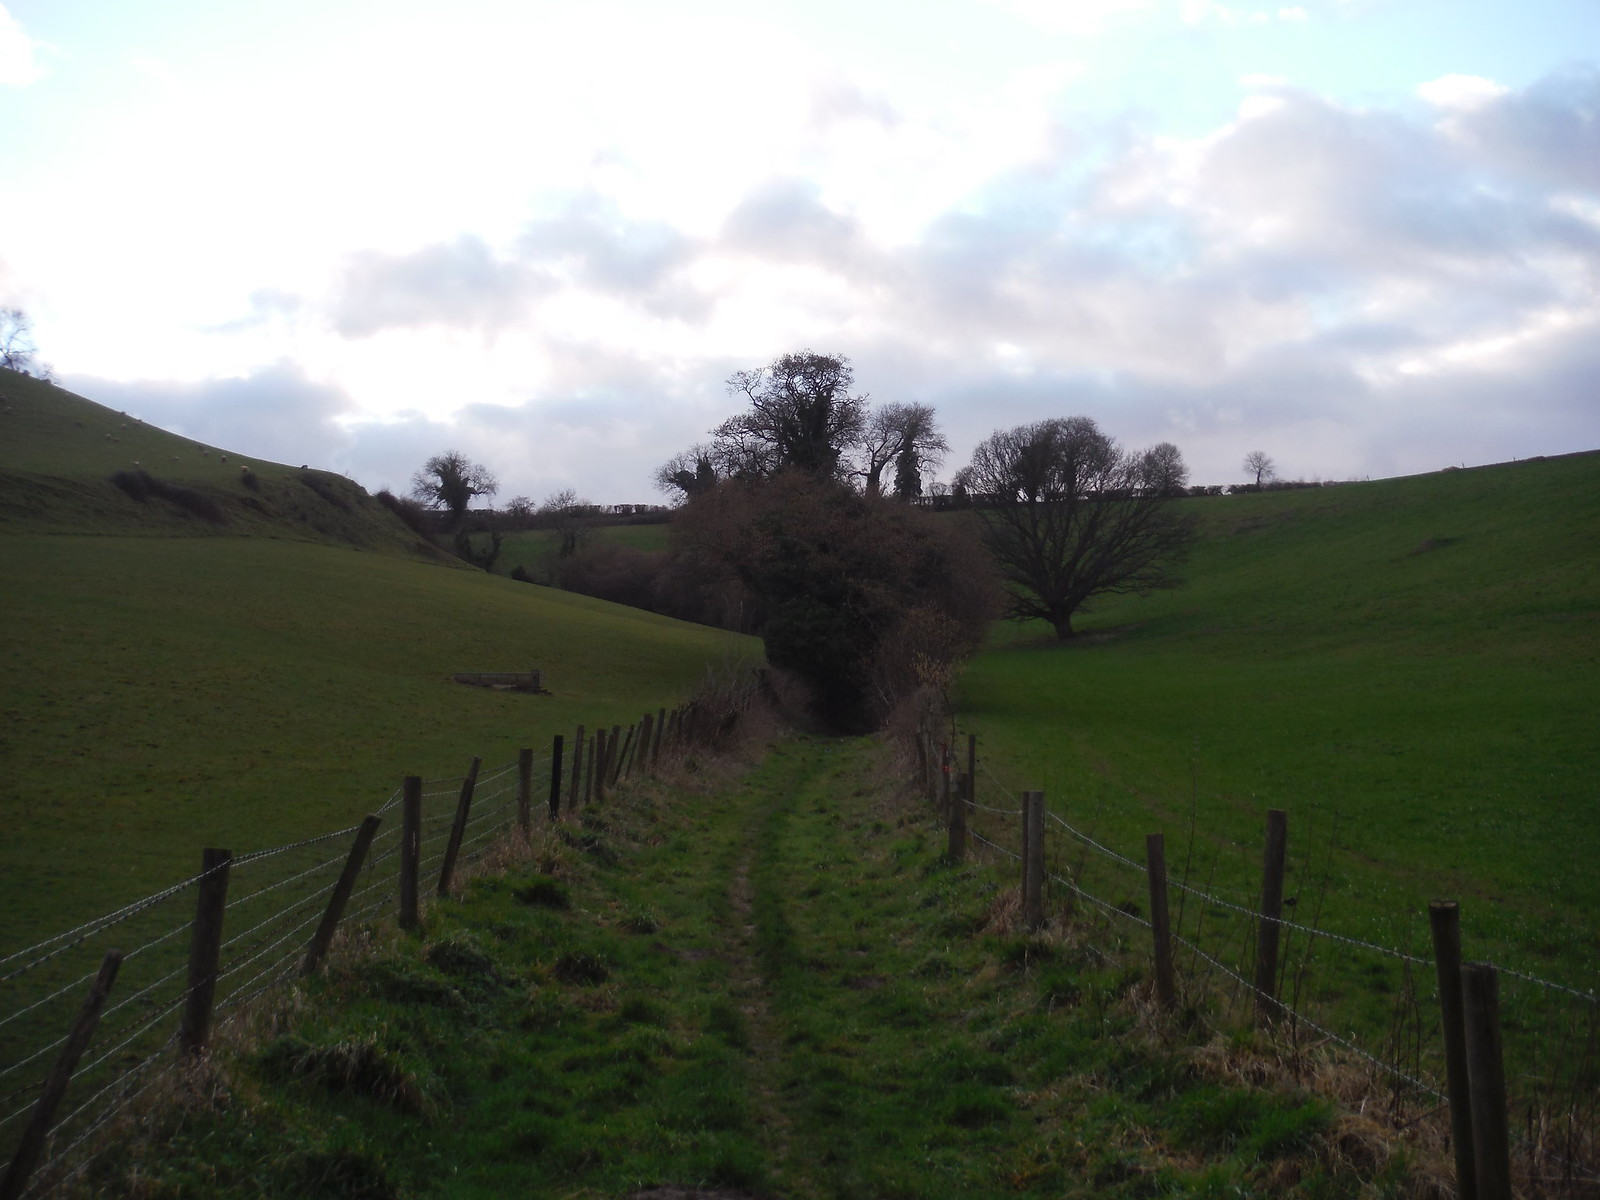 Ascent Route up to Ridge Lane SWC Walk 284 Bruton Circular (via Hauser & Wirth Somerset) or from Castle Cary